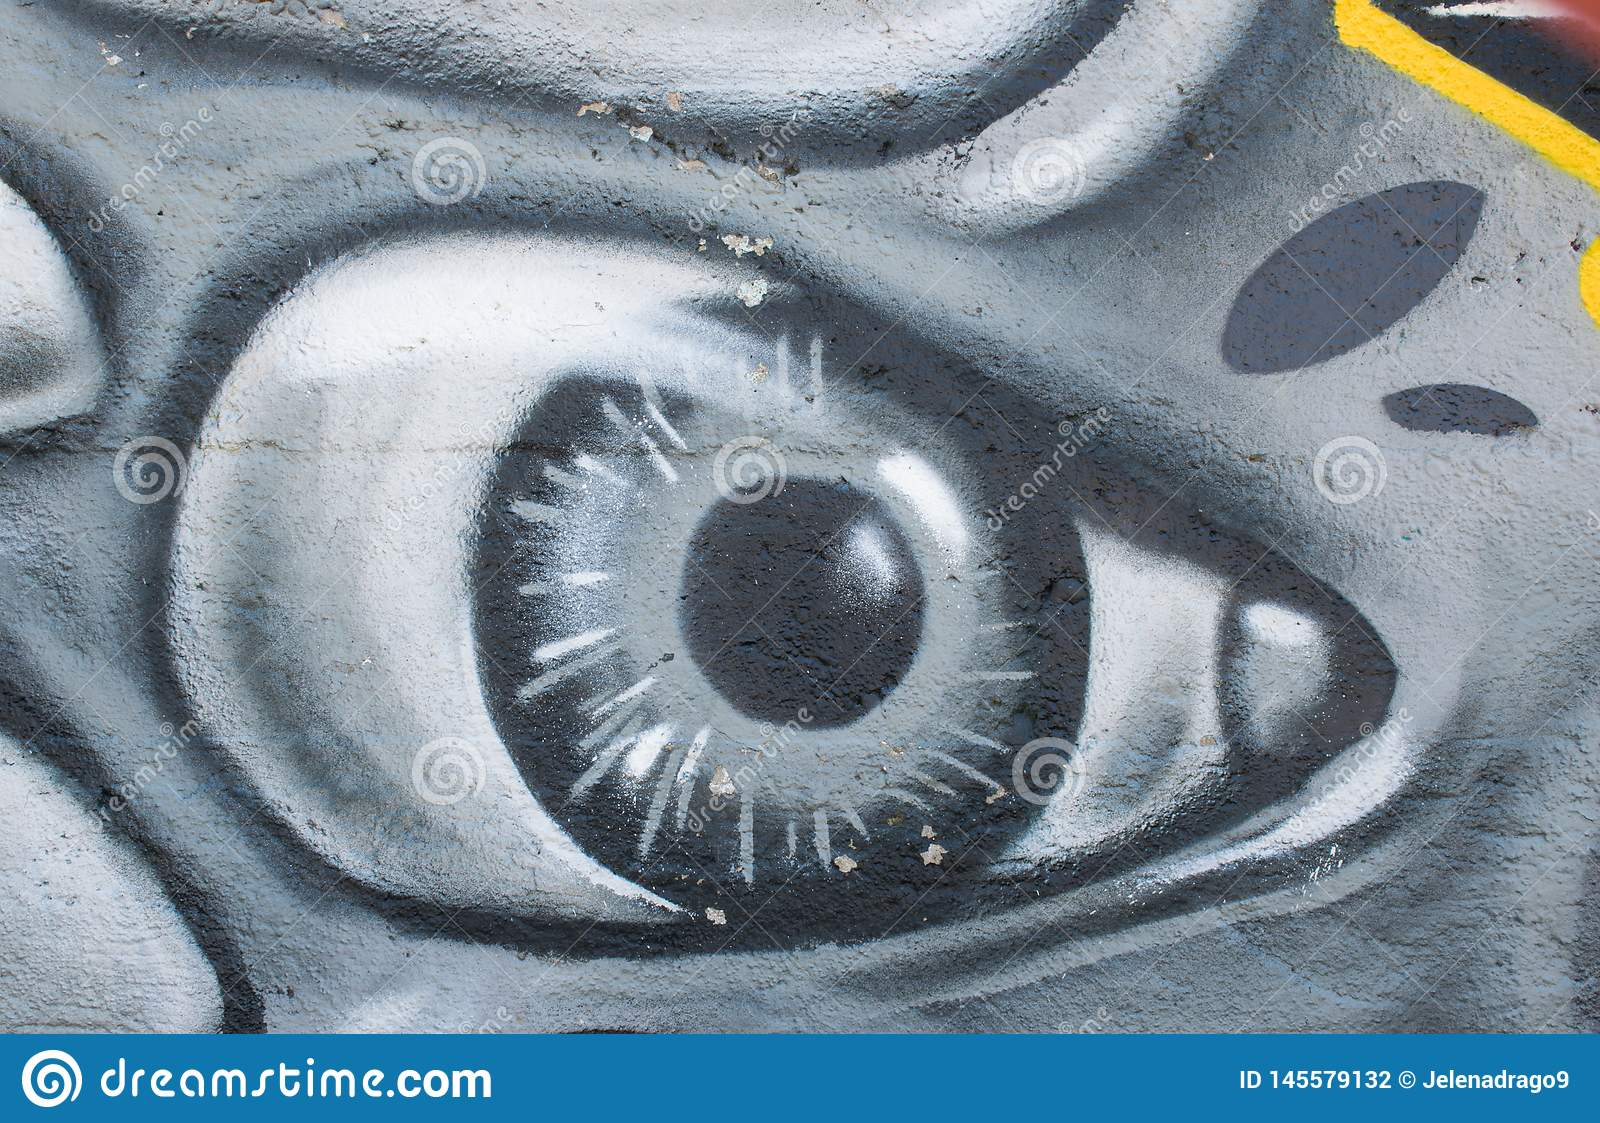 Graffiti Art In The City Street Showing The Painted Eye On The